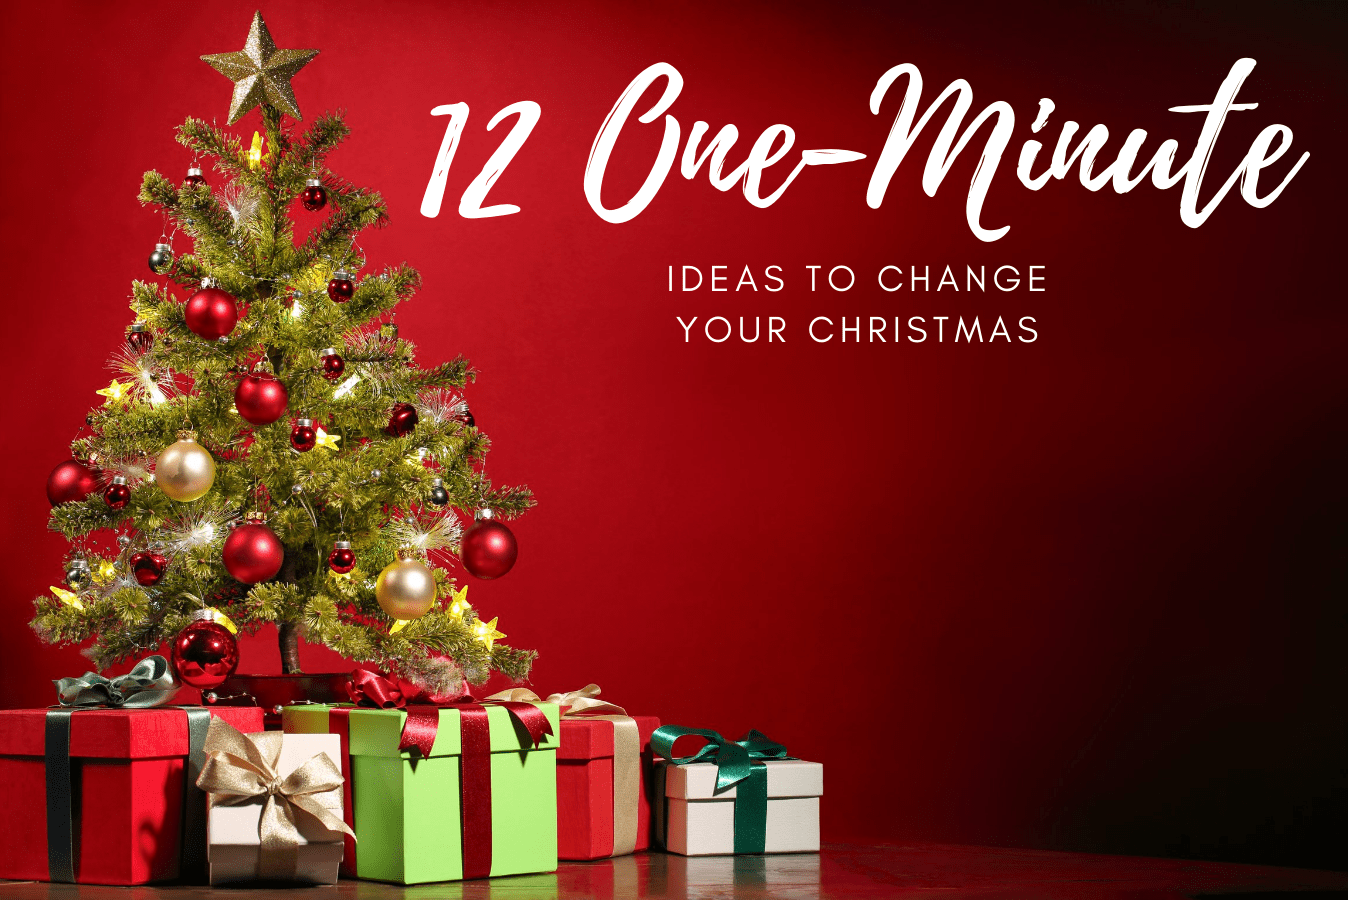 12 One-Minute Ideas to Change Your Christmas